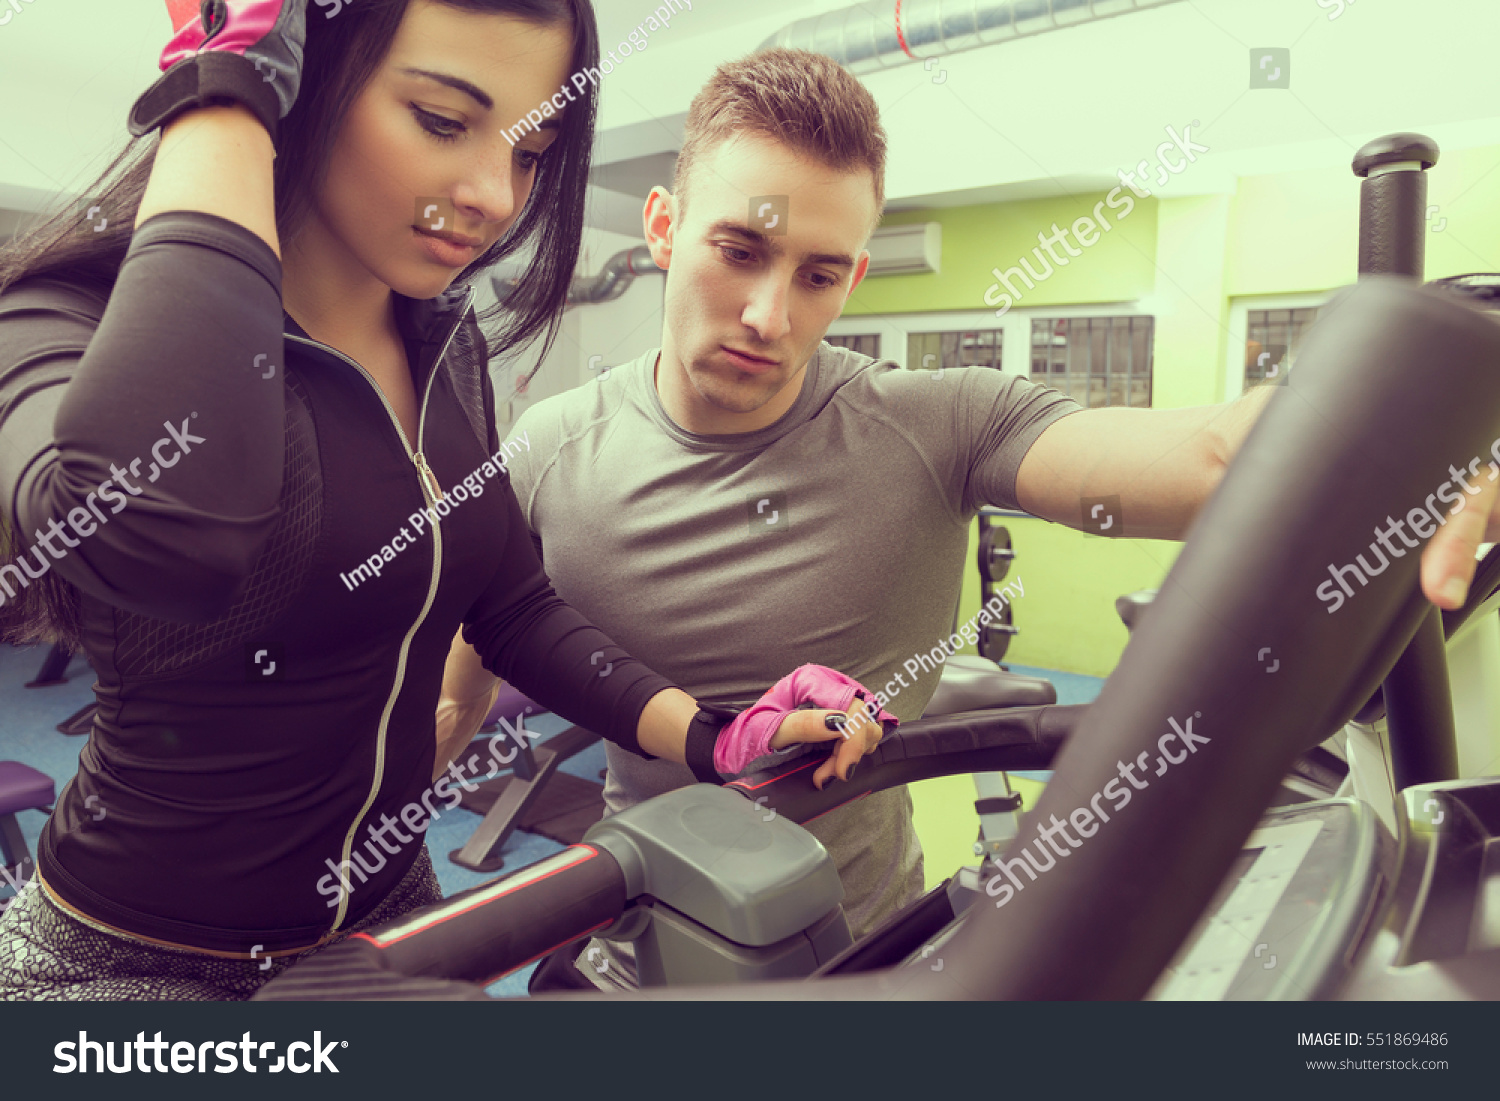 f44421a3898 Personal trainer giving a workout instructions to a female gym client.  Focus on the trainer